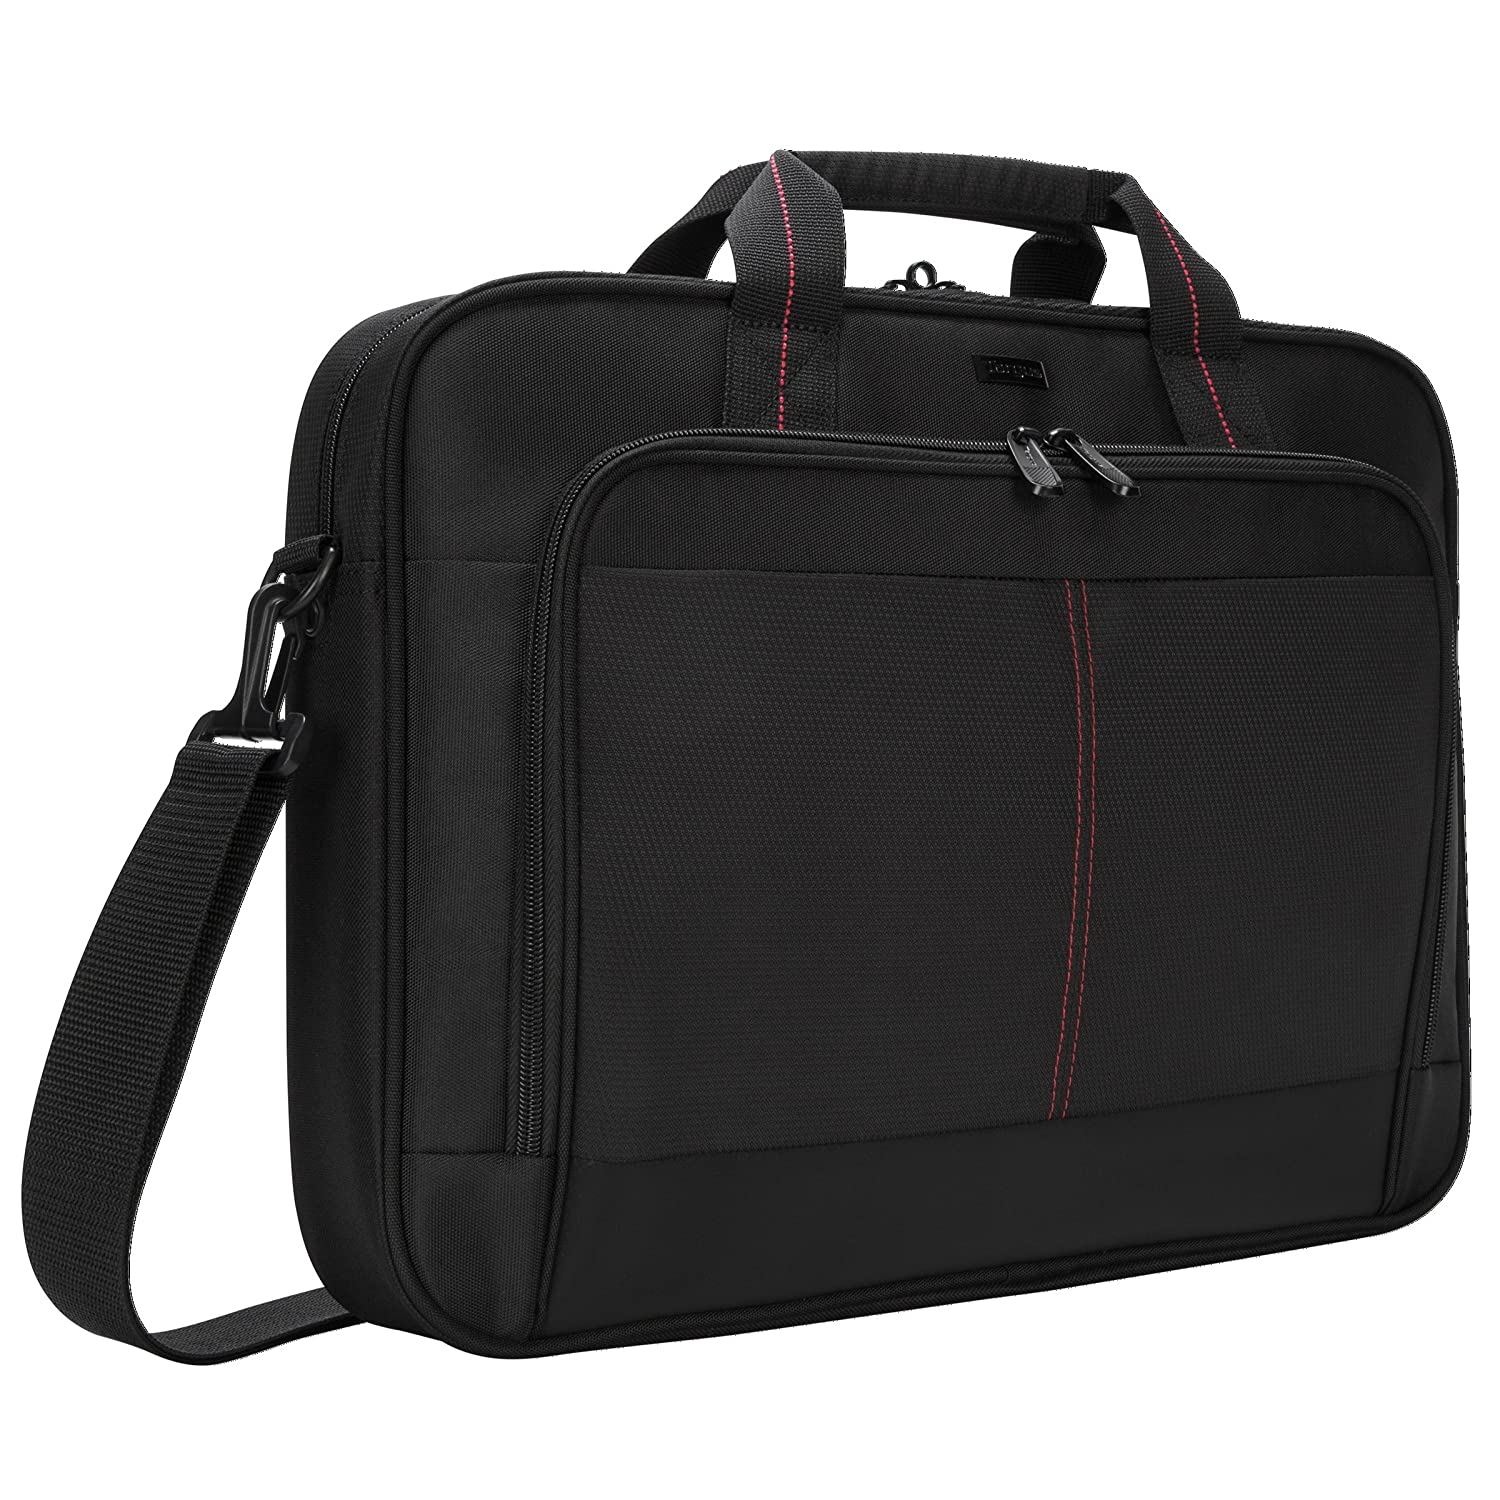 fc805557055 Amazon.com: Targus Classic Clamshell Case for 16-Inch Laptops, Black with  Red Accents (CN31US): Electronics